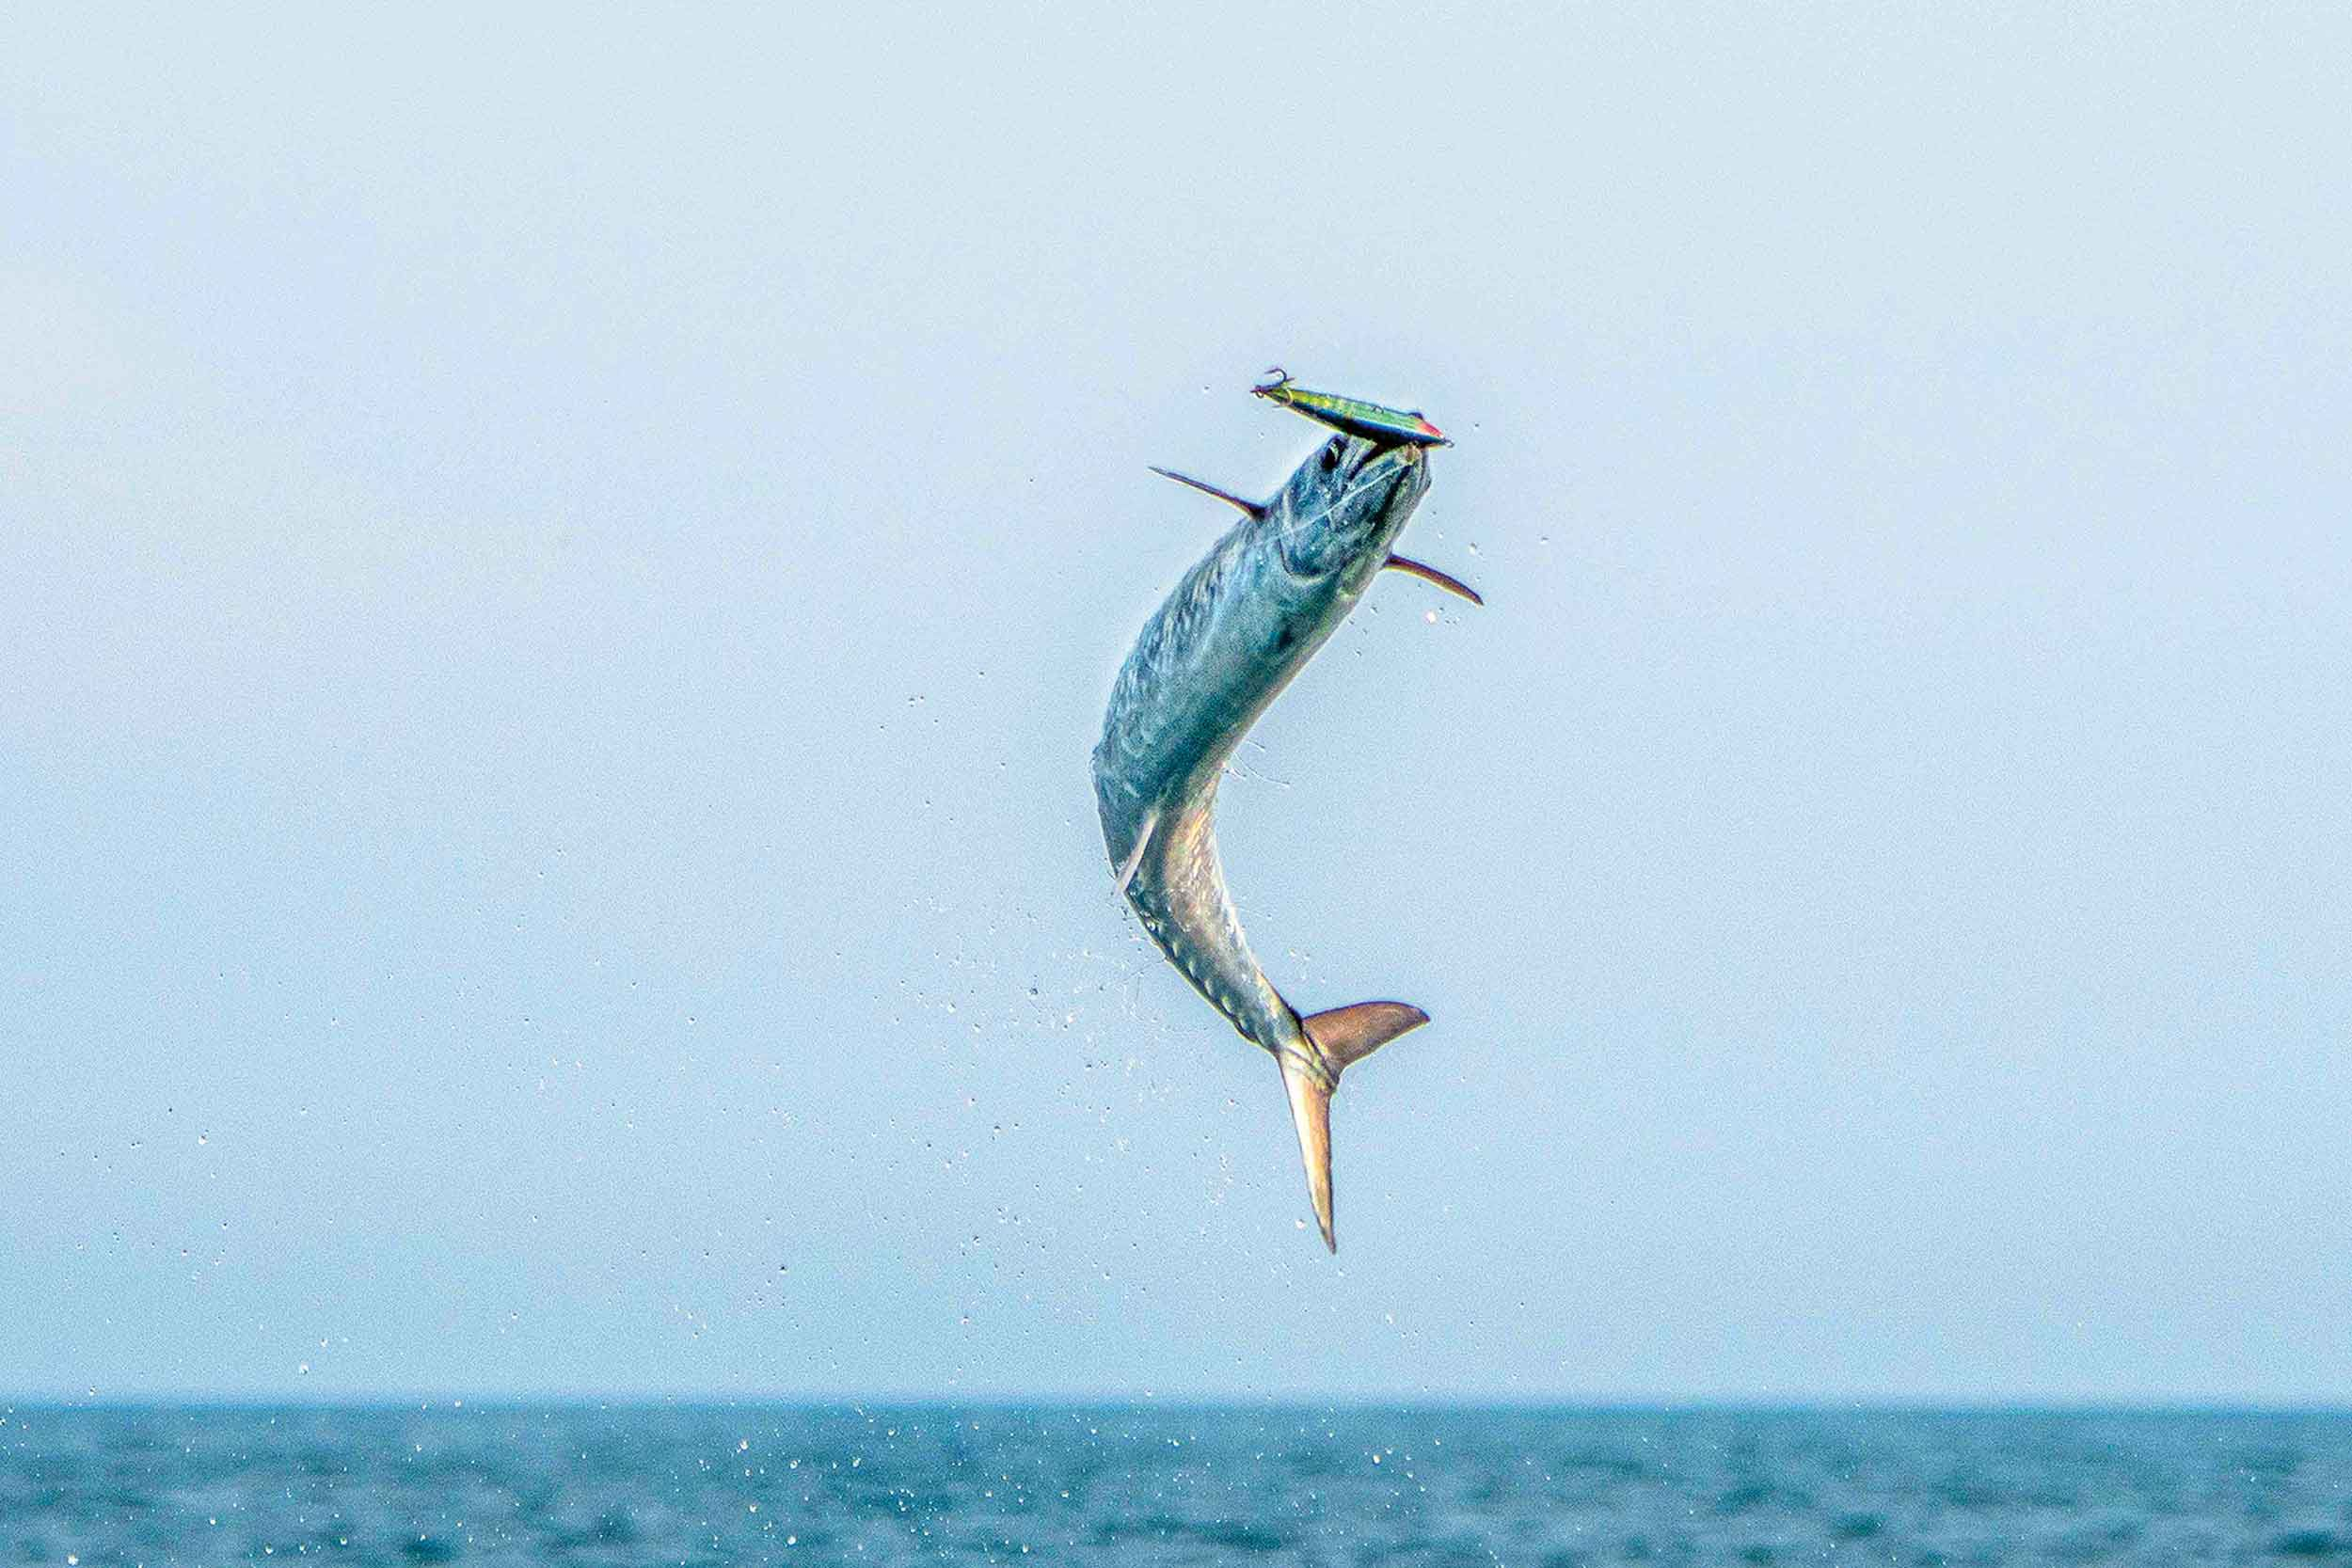 Kings, especially the larger specimens, are famous for skyrocketing during savage attacks on baits and lures, opposite.